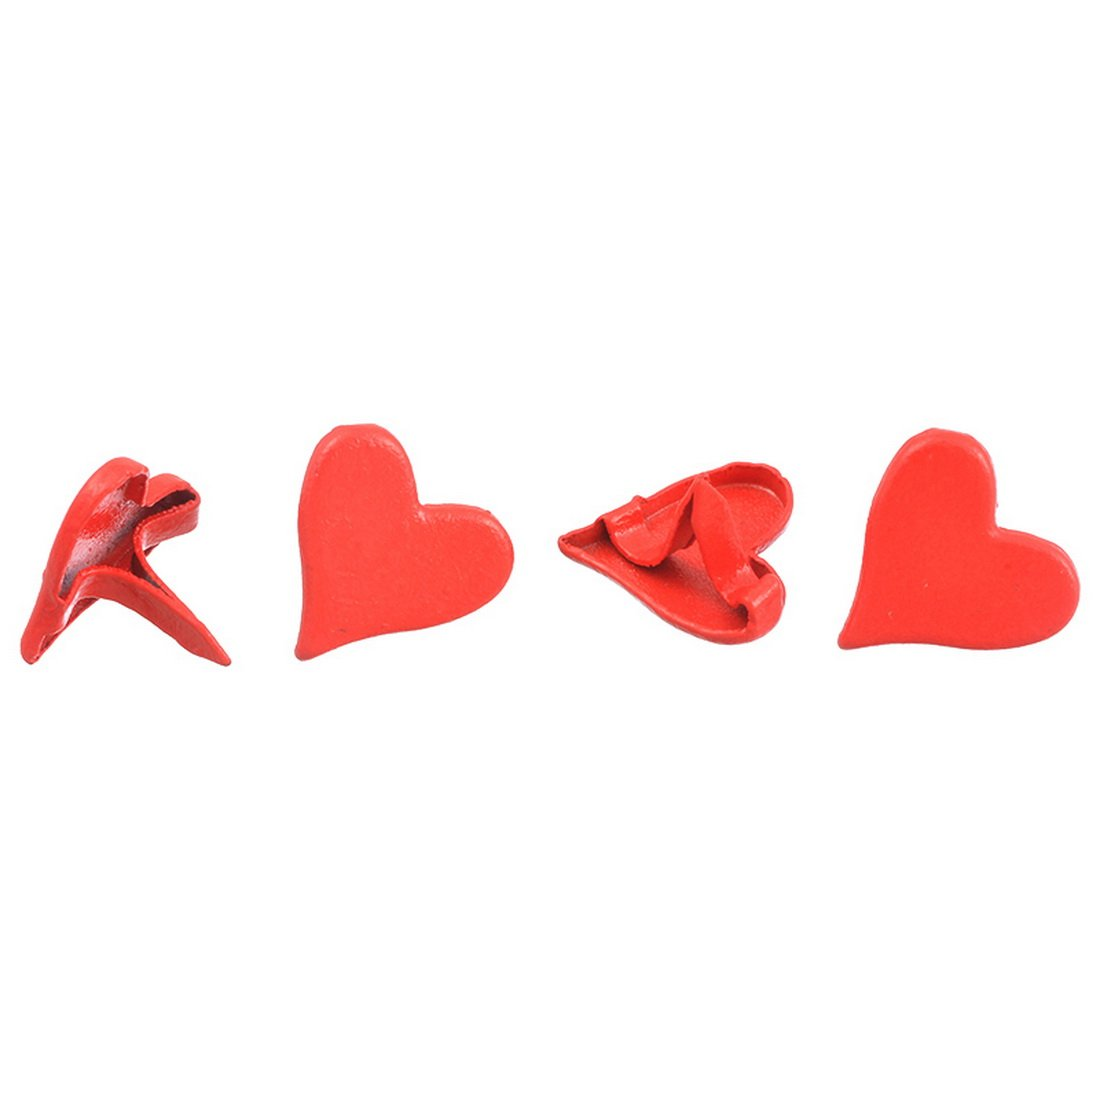 Loweryeah Red Heart Mini Brads DIY Scrapbooking Embellishment Pack 50pcs